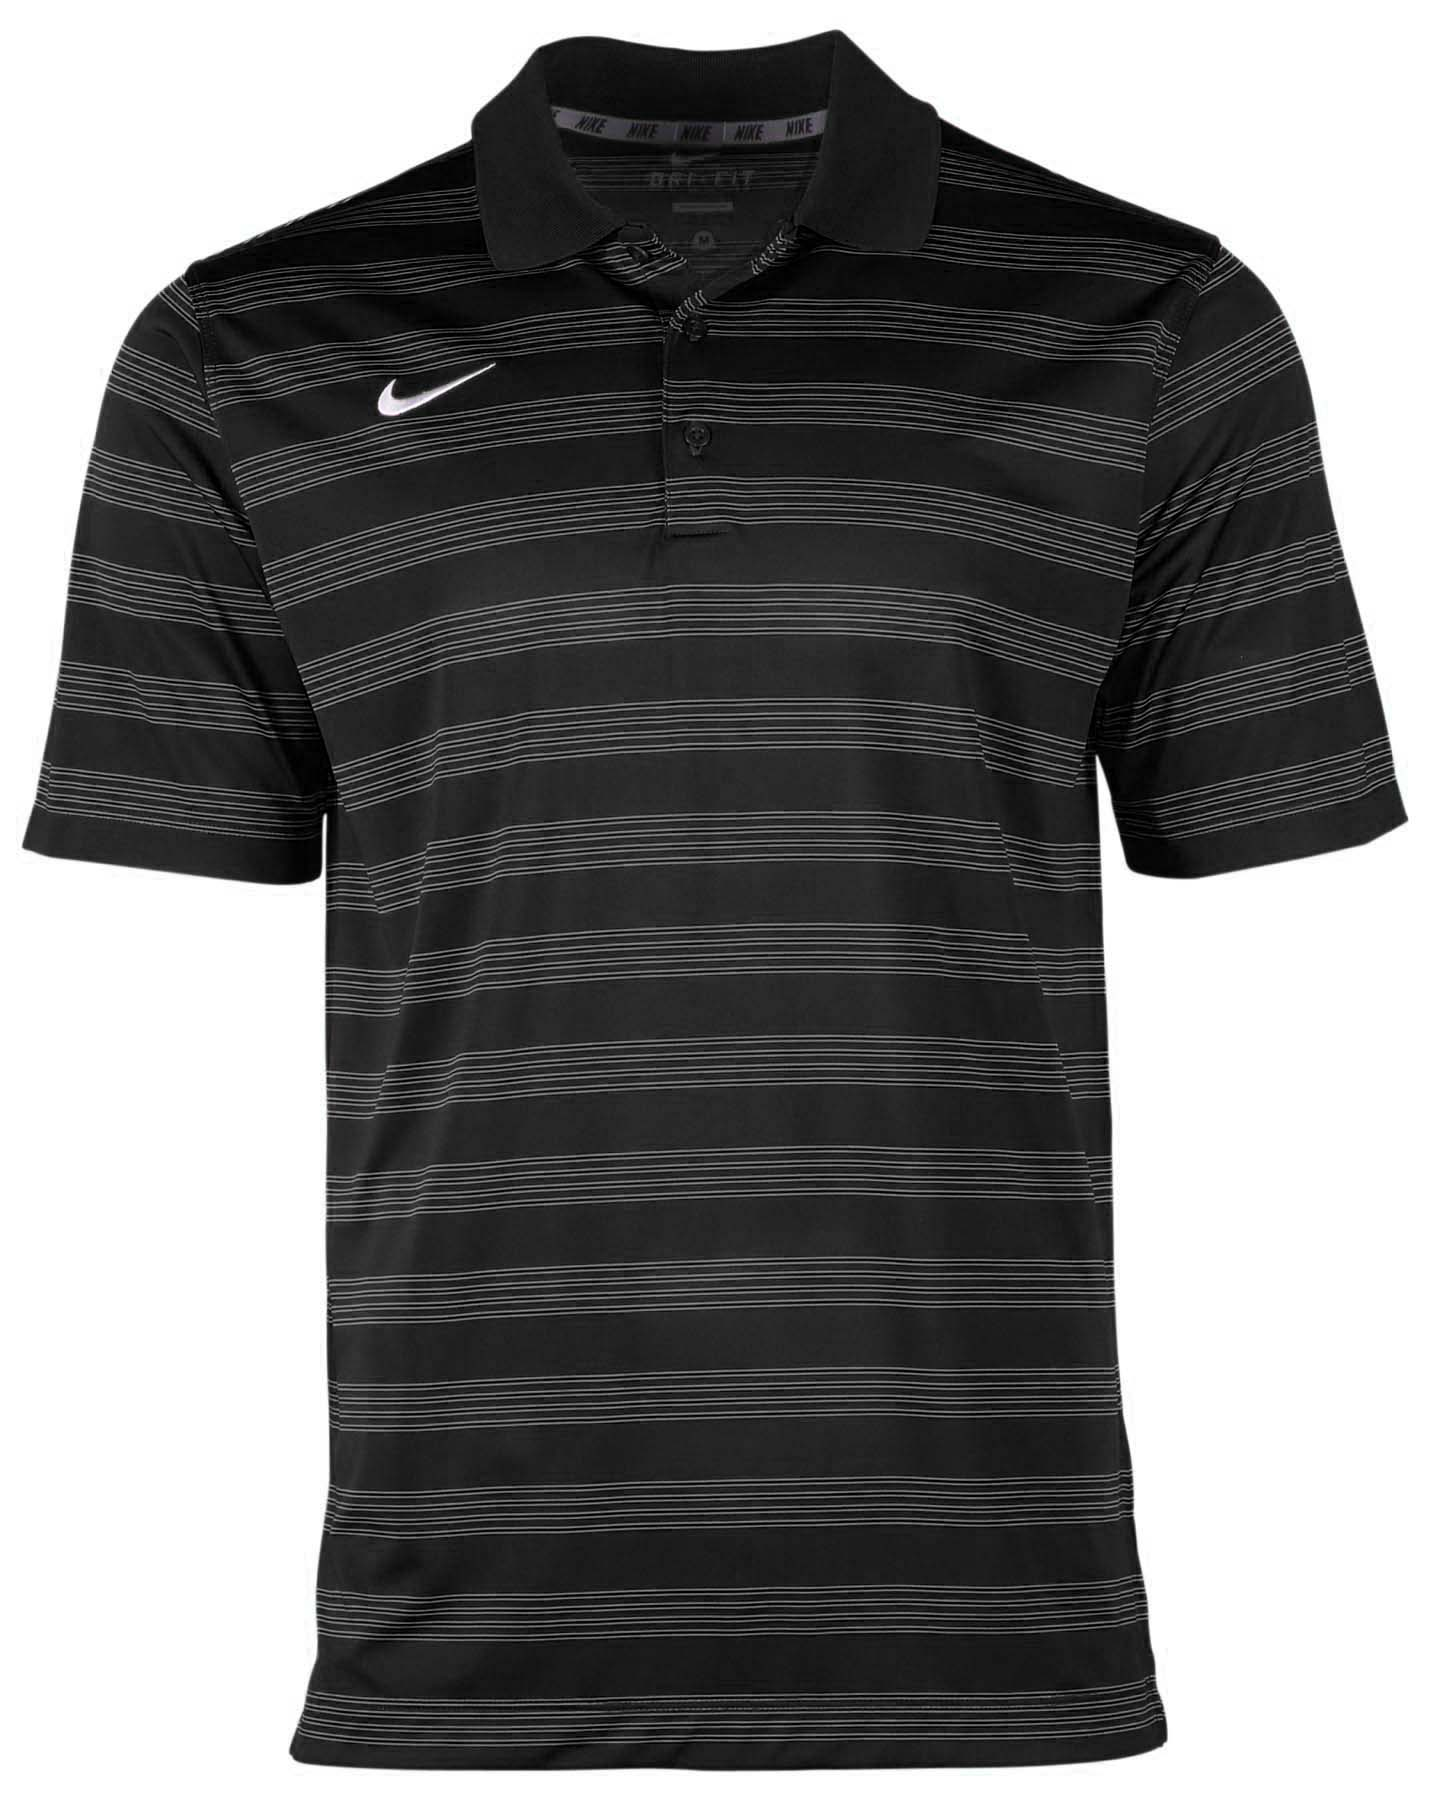 Nike Men s Dri Fit Game Time Striped Football Polo Shirt